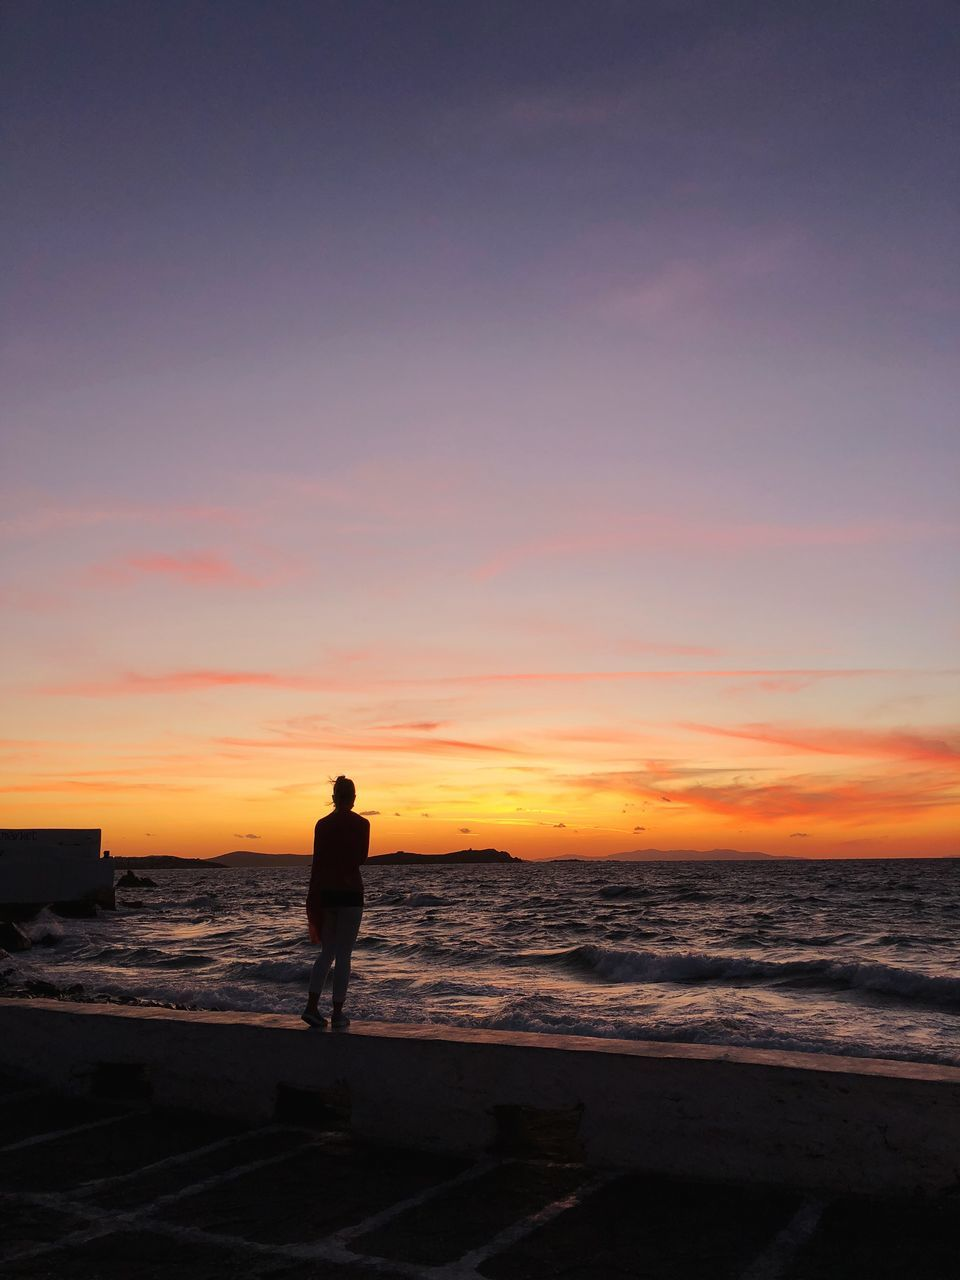 sunset, sea, beach, silhouette, water, one person, shore, full length, horizon over water, nature, beauty in nature, real people, leisure activity, standing, scenics, men, walking, sky, outdoors, lifestyles, sand, wave, one man only, people